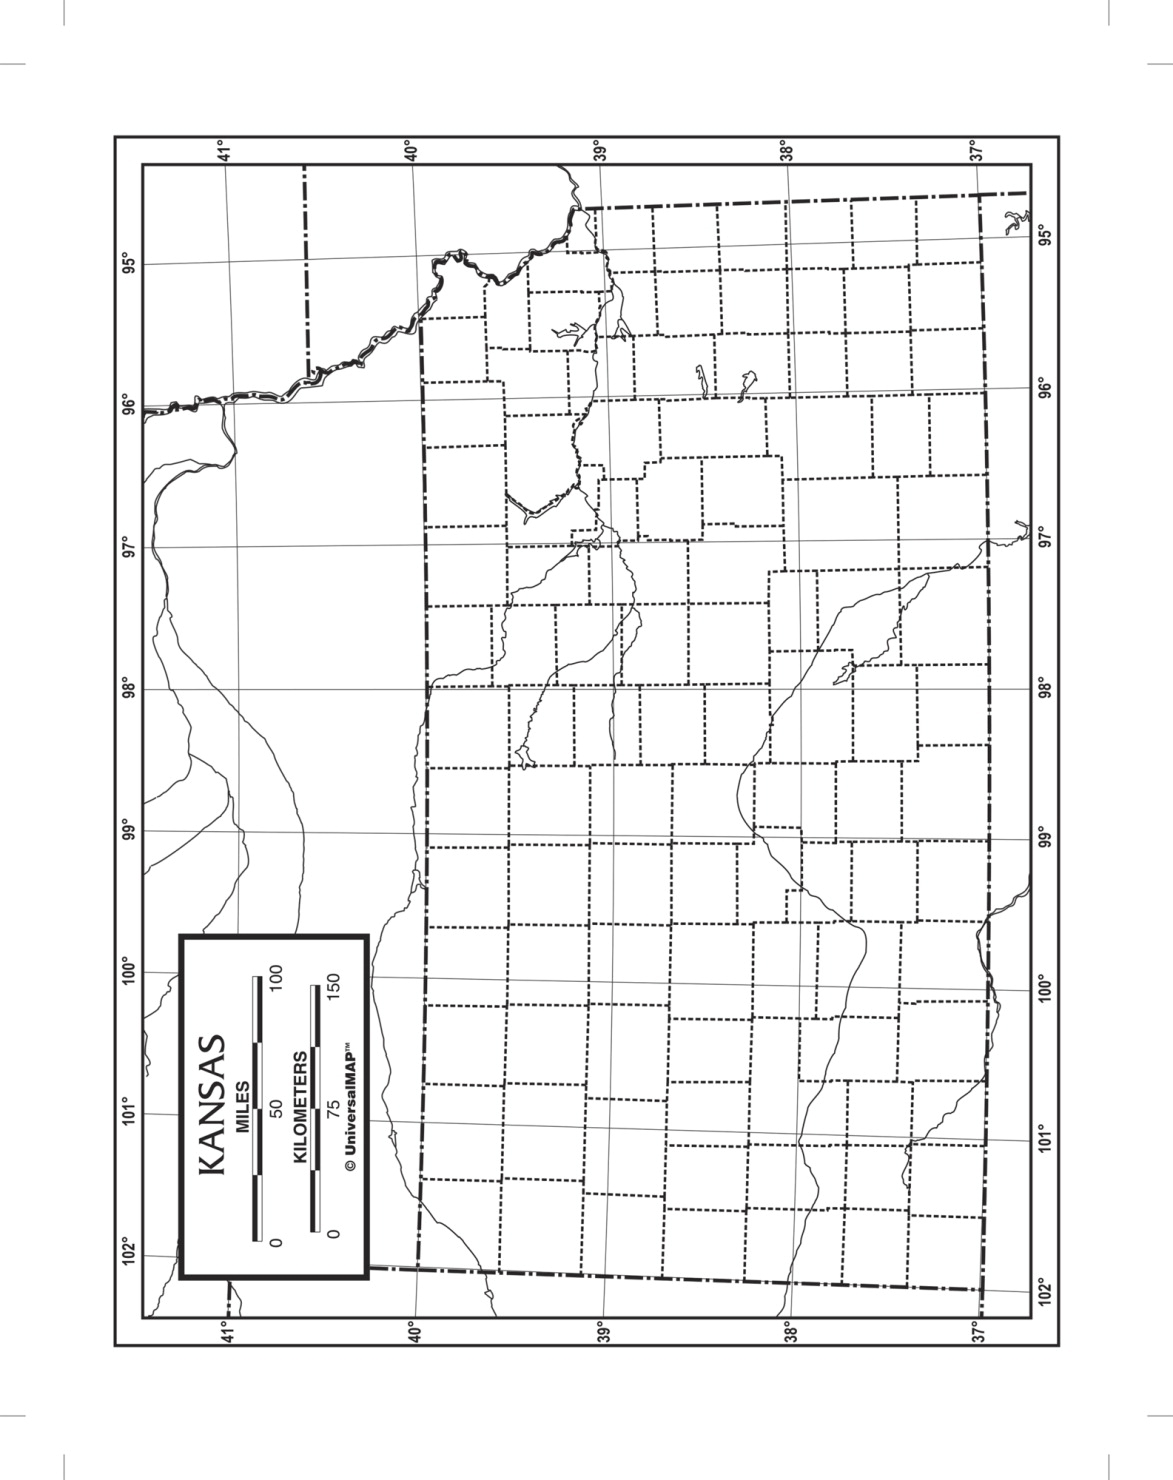 Kappa Map Kansas Outline Map; Laminated; 8-1/2 X 11 In; Pack Of 50 - 1573870 - Toys Literature For Social Studies 1573870